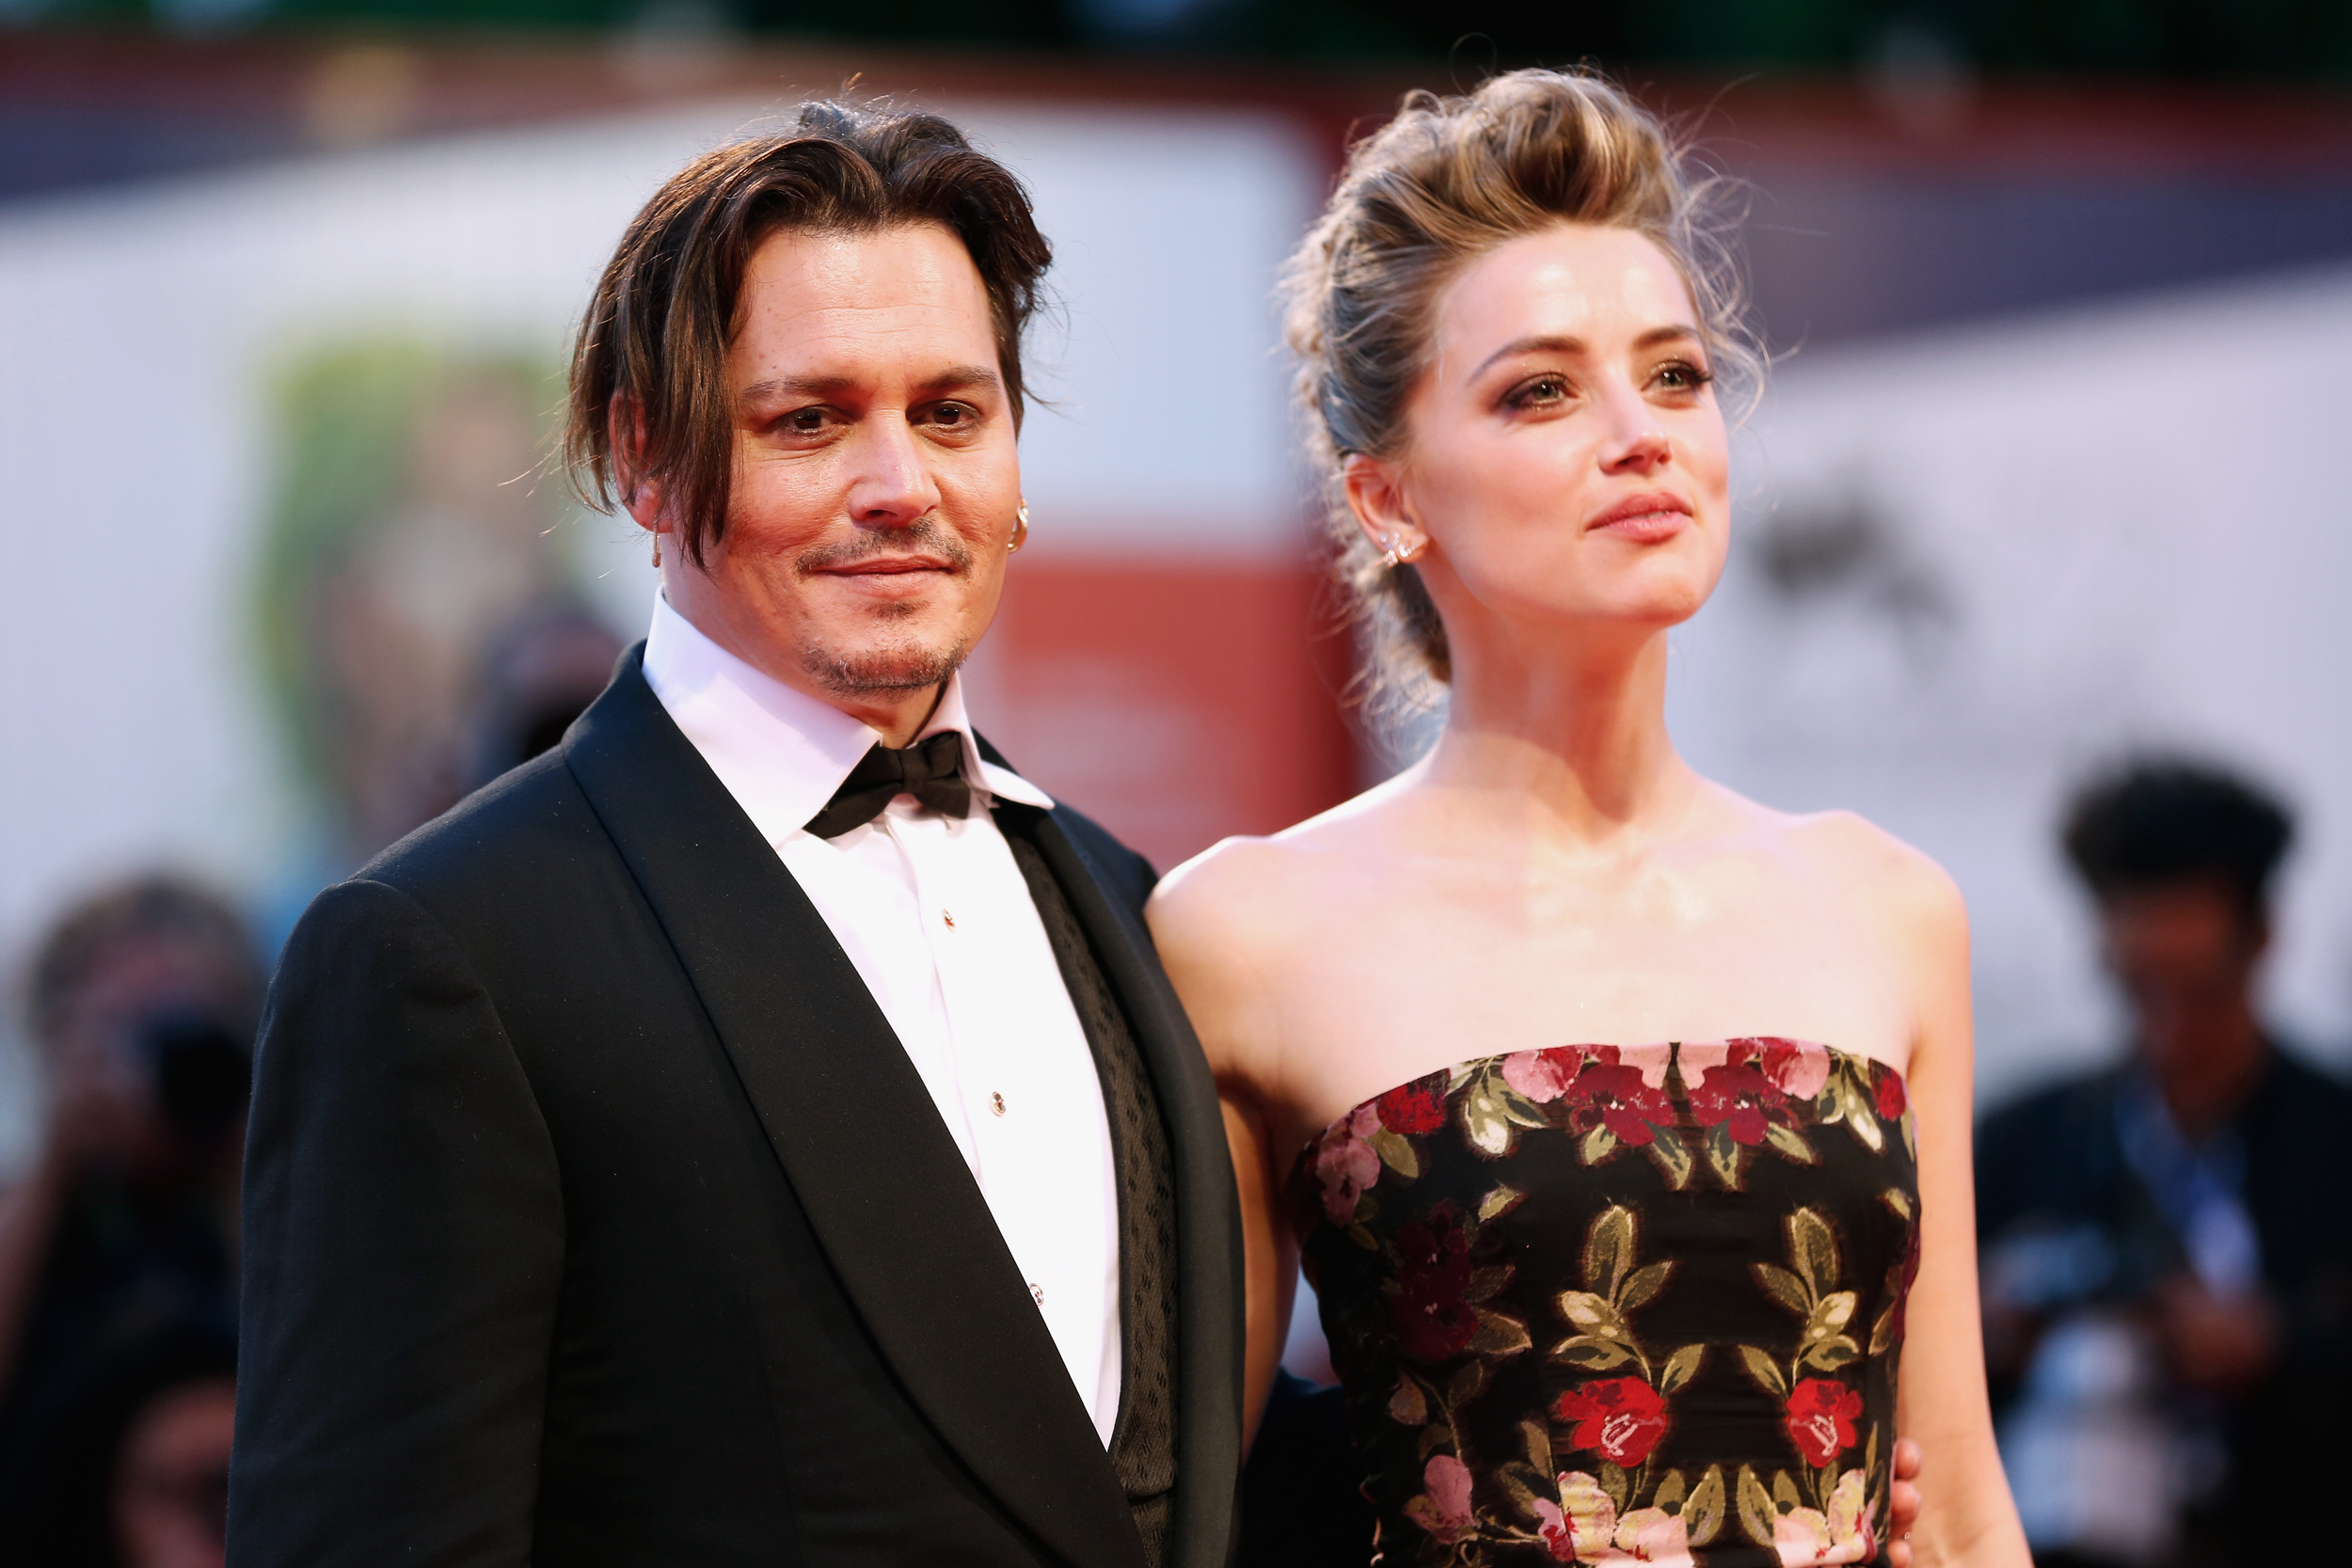 Johnny Depp loses libel case tied to Amber Heard in win for domestic violence victims